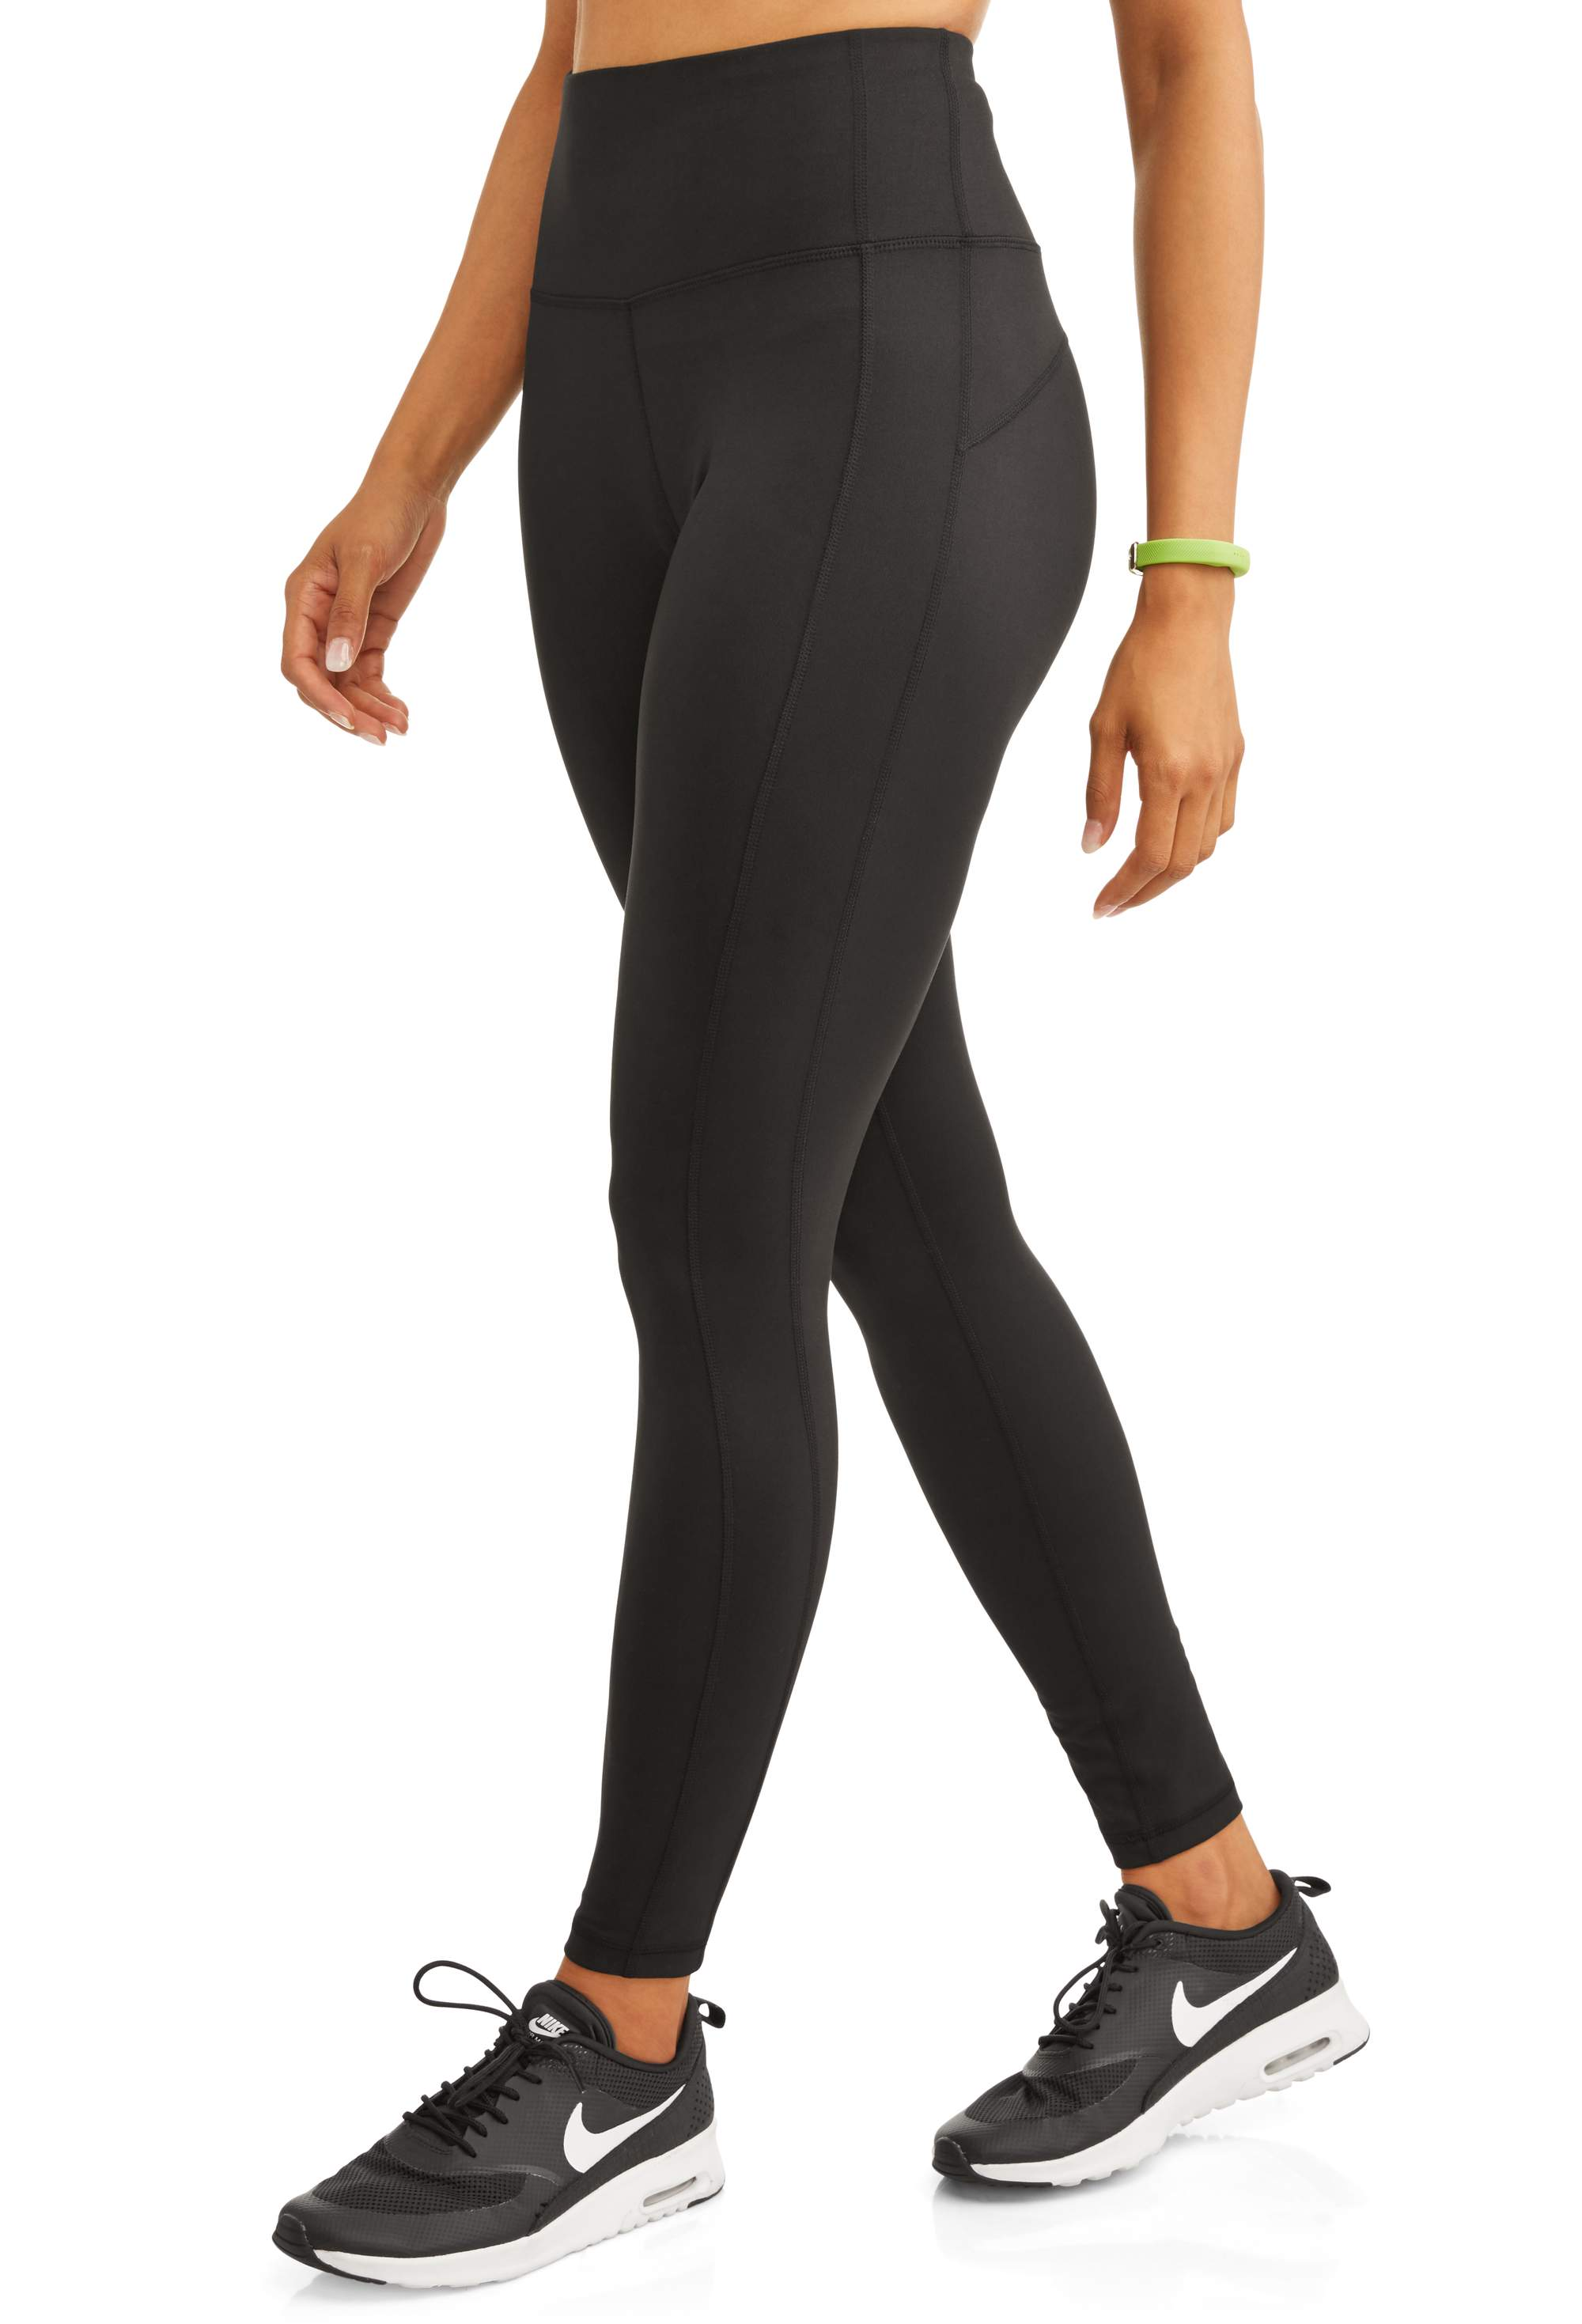 Champion LIFE Women/'s Graphic Ankle Length Tight Choose SZ//Color